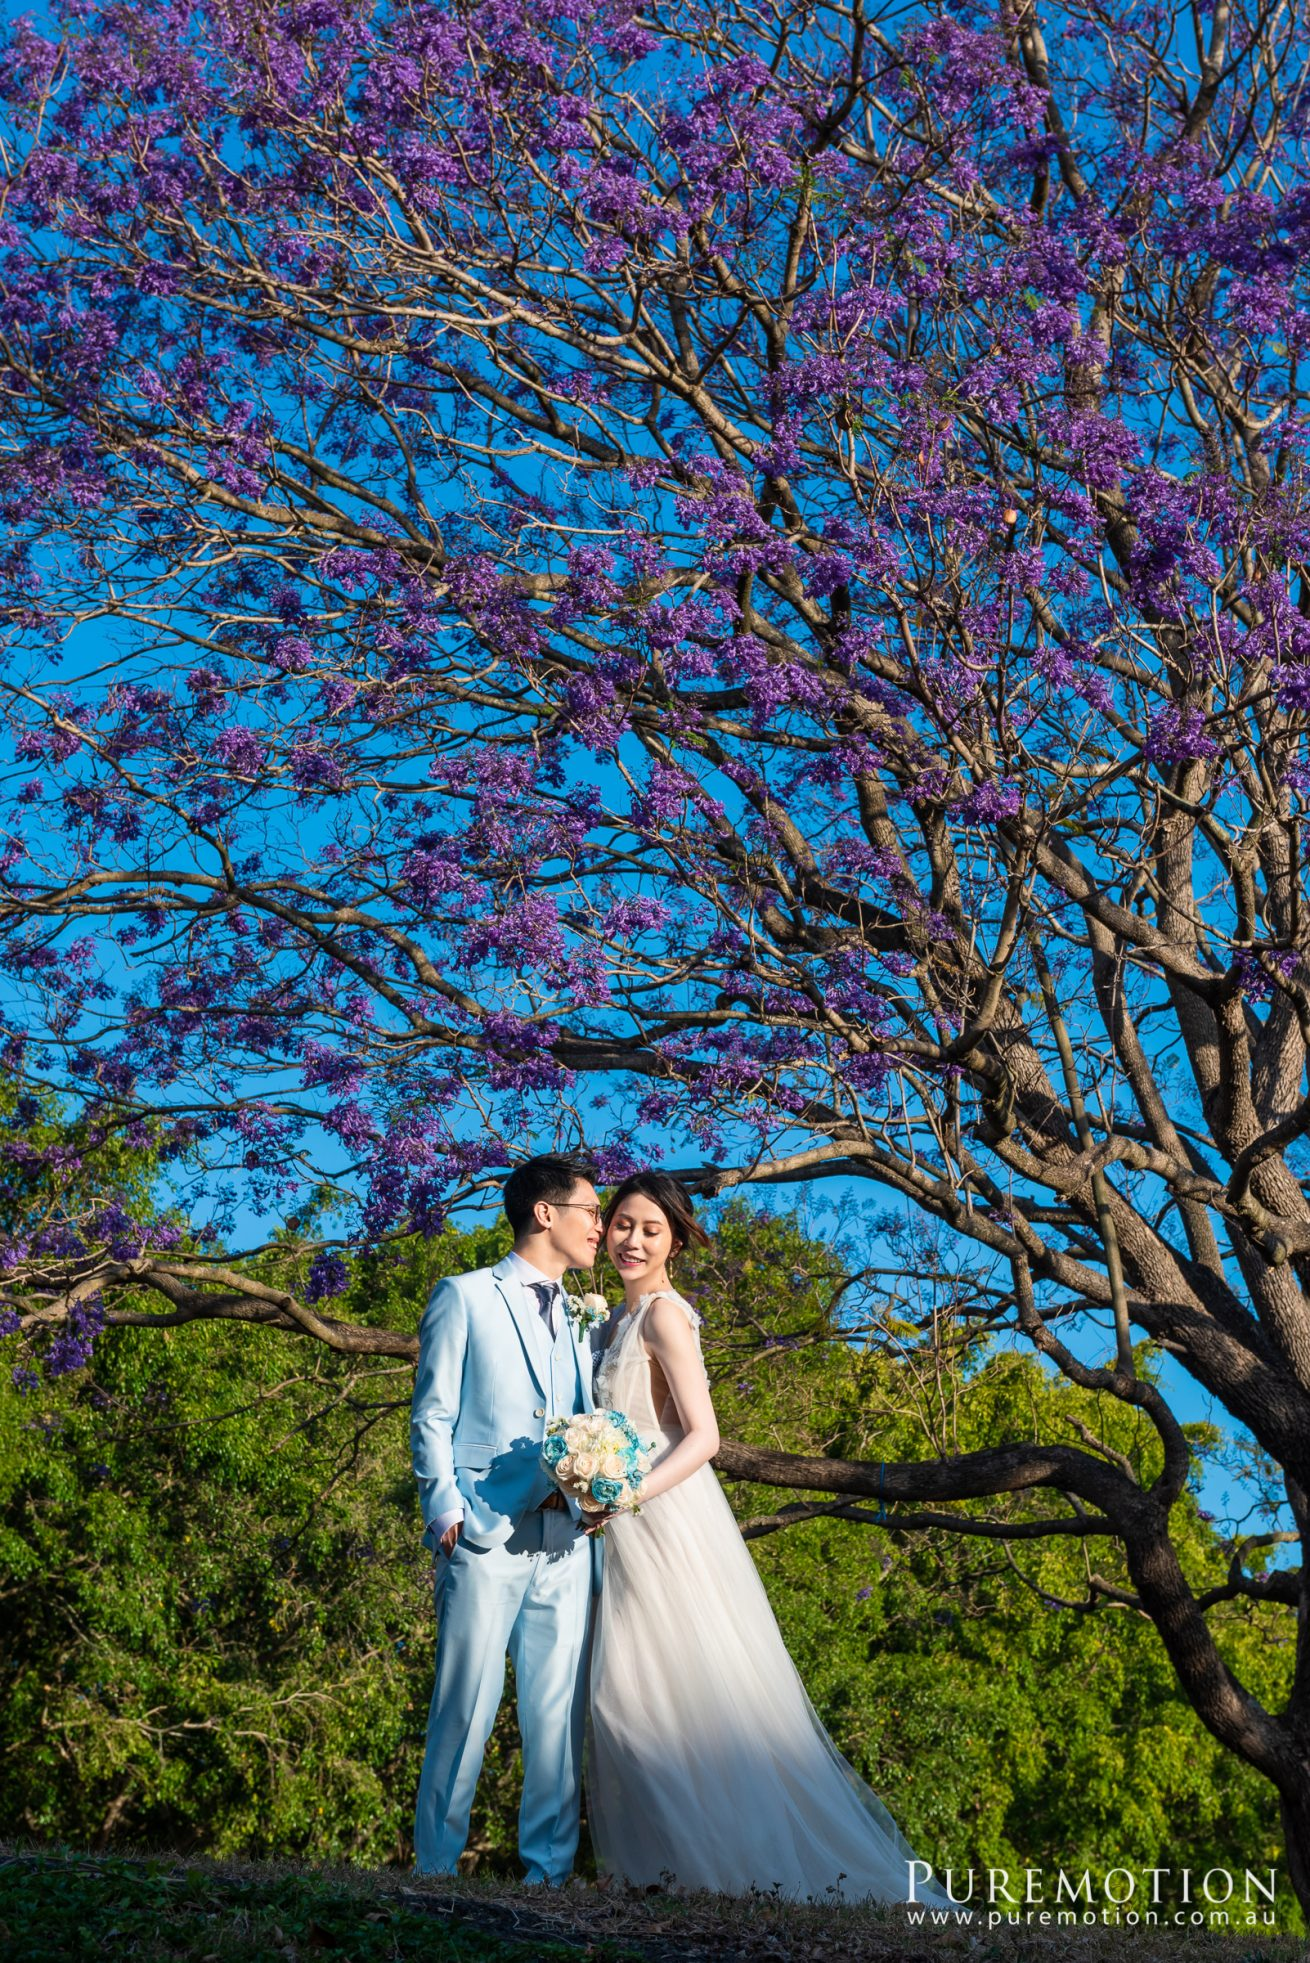 190928 Puremotion Wedding Photography Brisbane Alex Huang AnaDon-0070